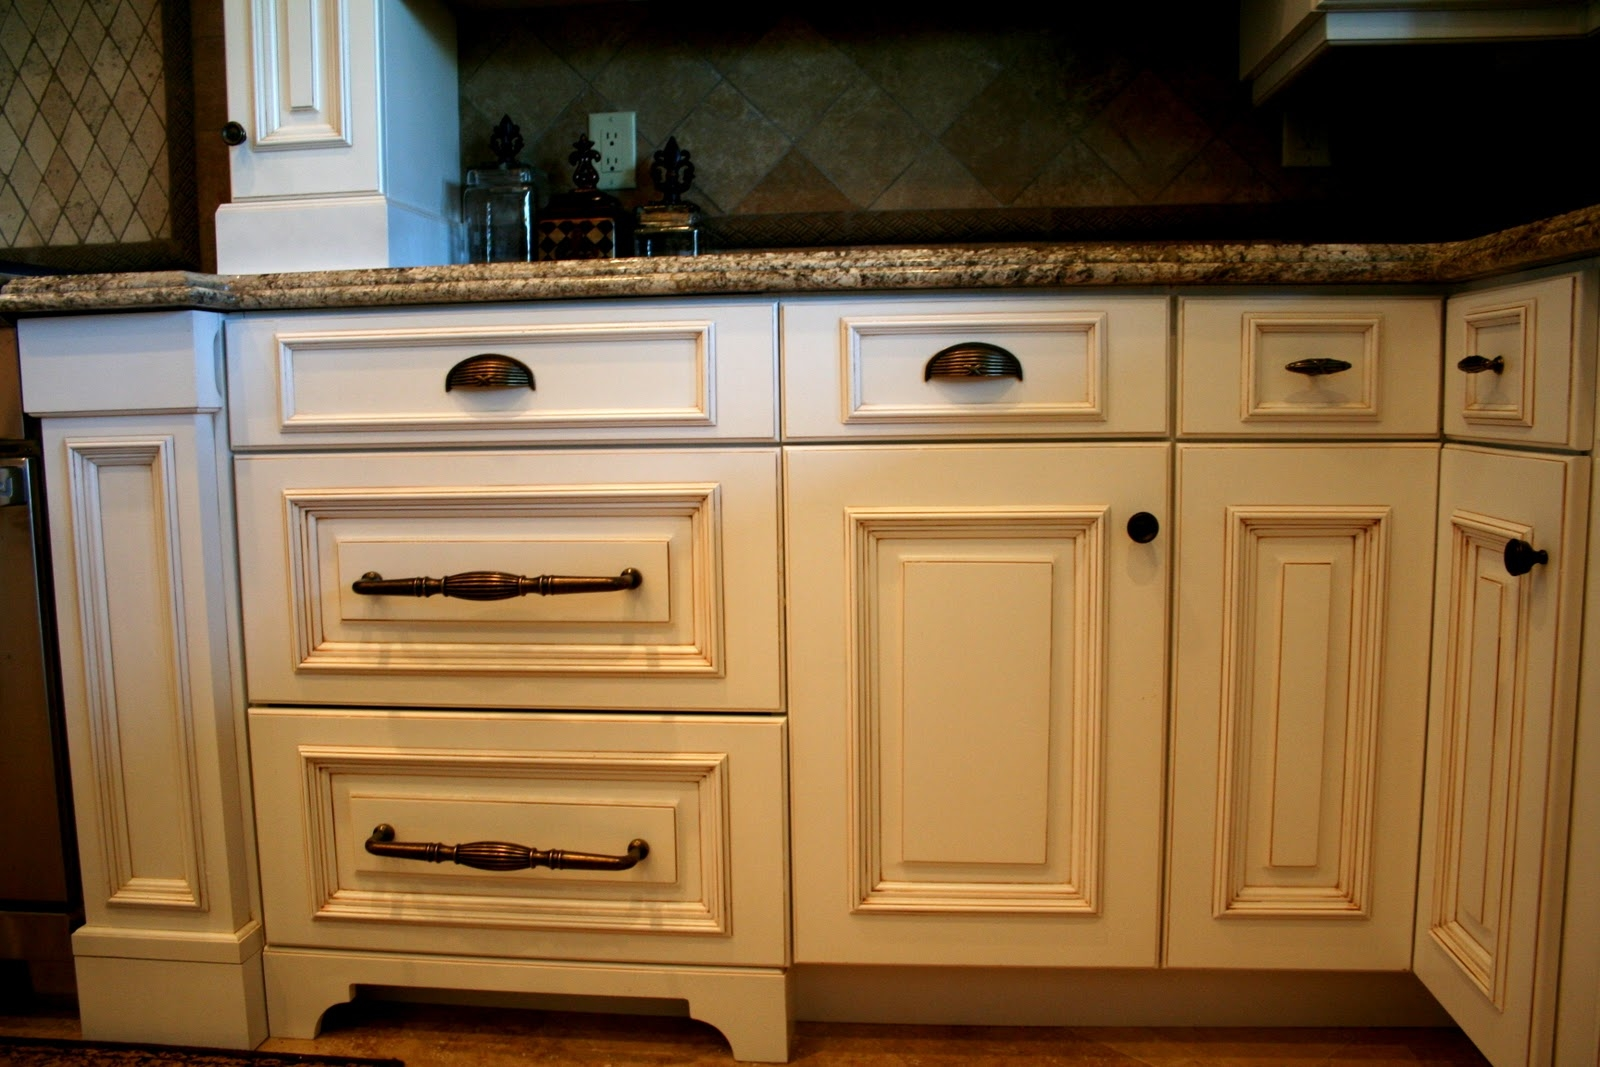 Kitchen Knobs And Pulls For Cabinets